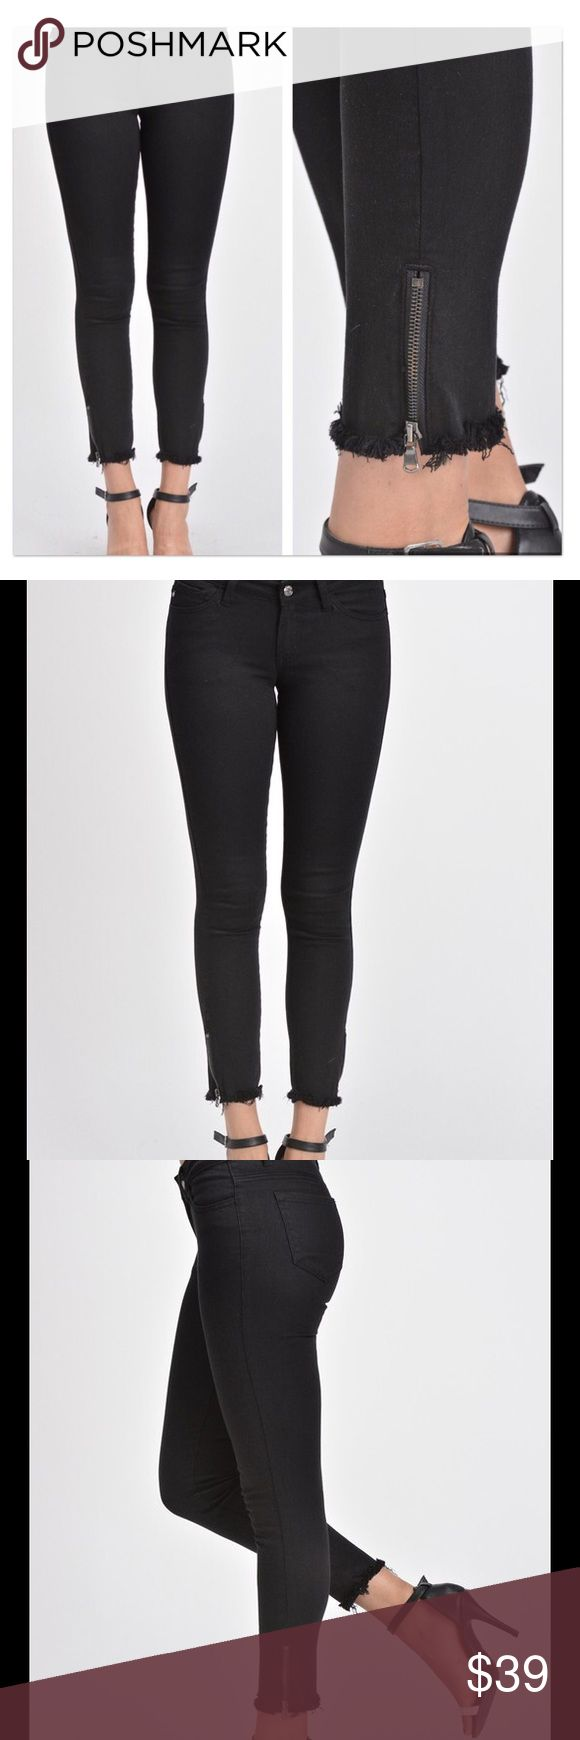 """Black Skinny Jeans Frayed Hem and Ankle Zipper Cute black Skinnies with frayed bottom hem and ankle zipper. These offer lots of stretch. If you go with your normal size it will have sort of a girlfriend fit, size down one size for a more fitted look. Please check measurements, though. I'm only offering a suggestion with sizing! Inseam:26.5"""" 💎Measurements of Waists UnStretched: 💎1/24:25"""" 💎3/25:26"""" 💎5/26:27"""" 💎7/27:28"""" 🛍Bundle 2+ items for discount! Jeans Skinny"""